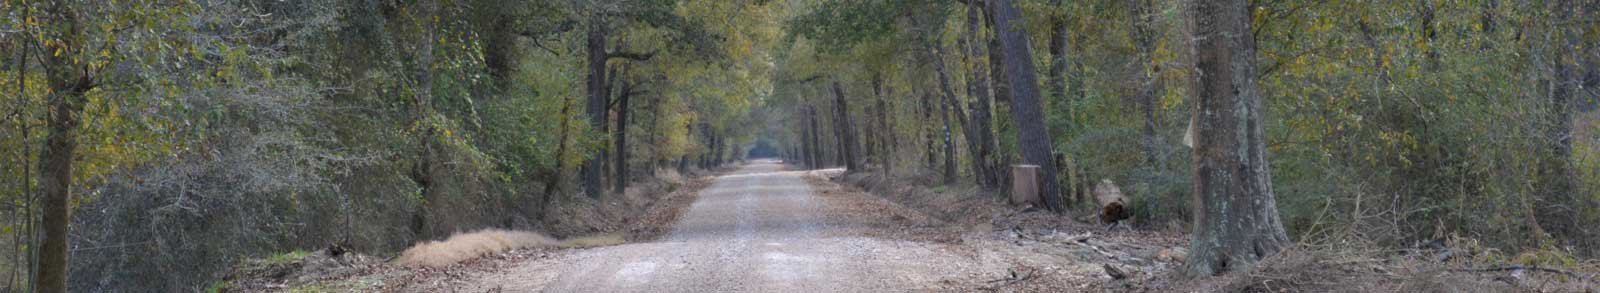 Long dirt road with trees on both sides